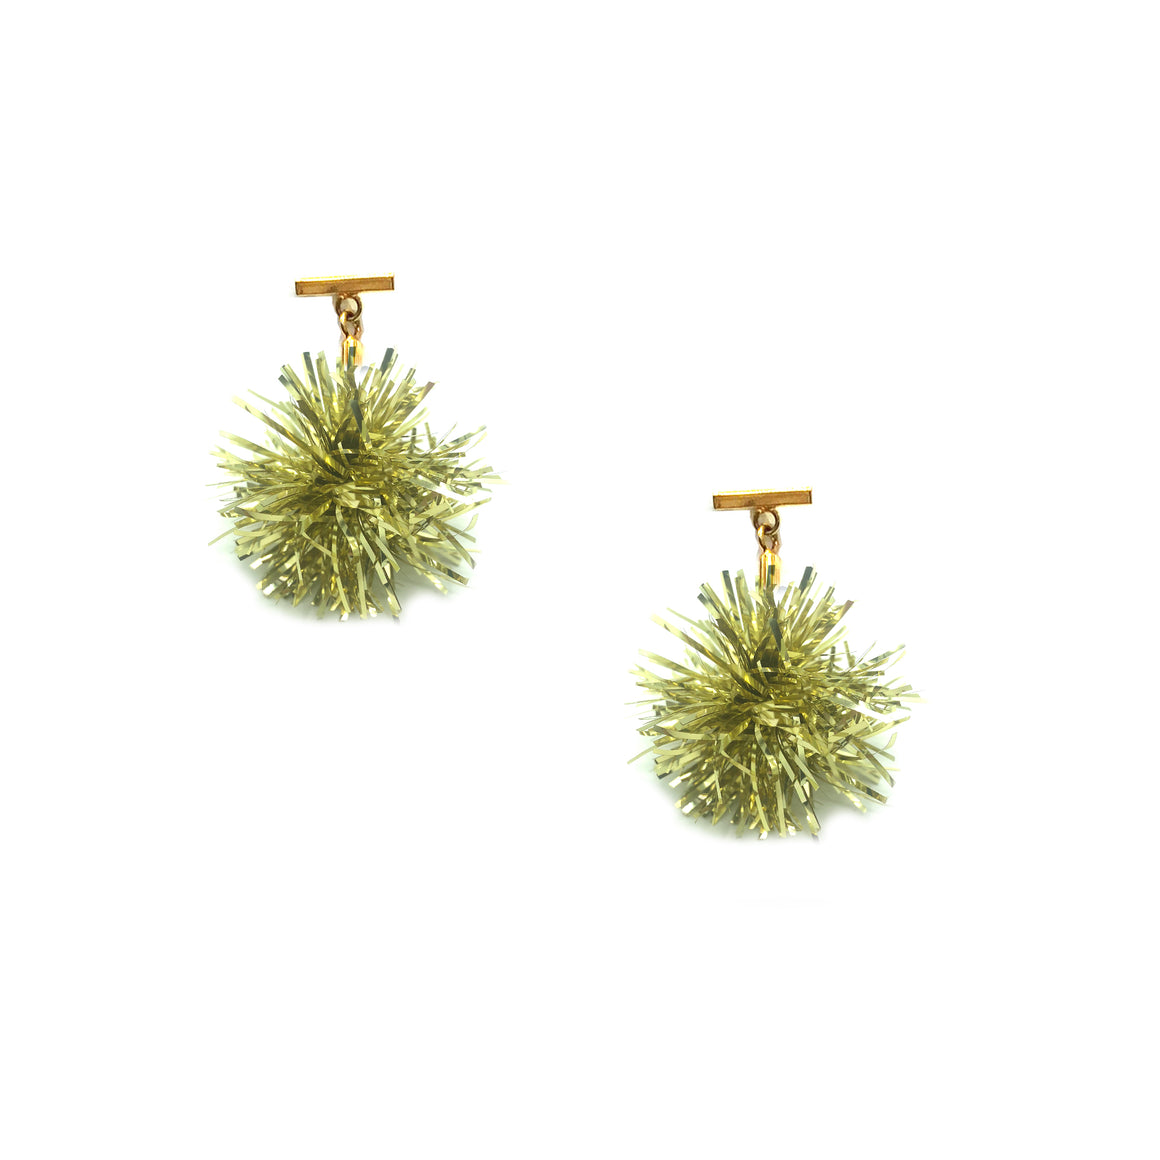 "Gold 1"" Lurex Pom Pom T Stud Earrings, Earrings, Tuleste, Tuleste"